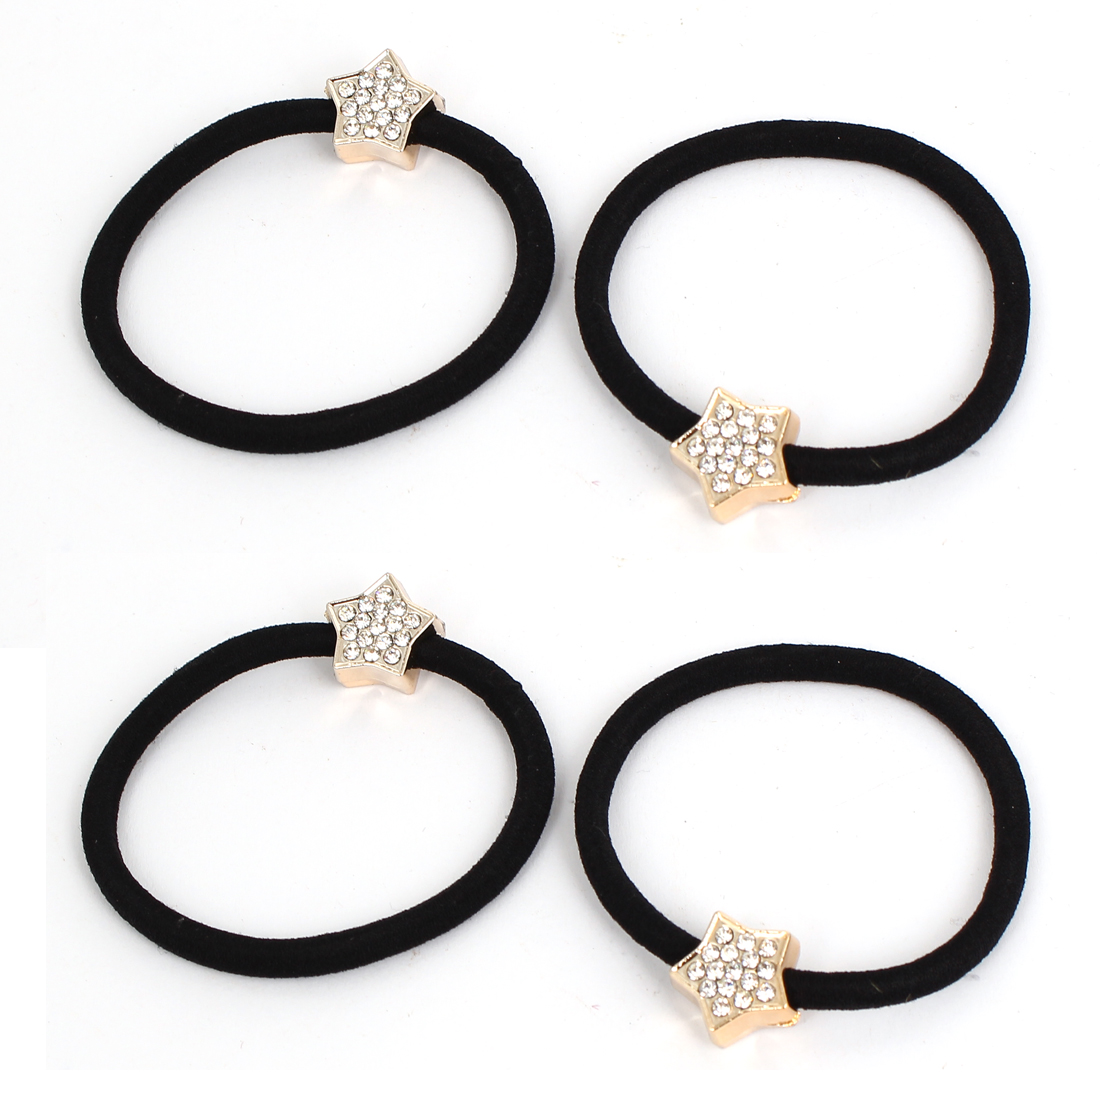 Metal Star Decor Women Elastic Hair Ring Rope Band Ponytail Holder Black 4Pcs